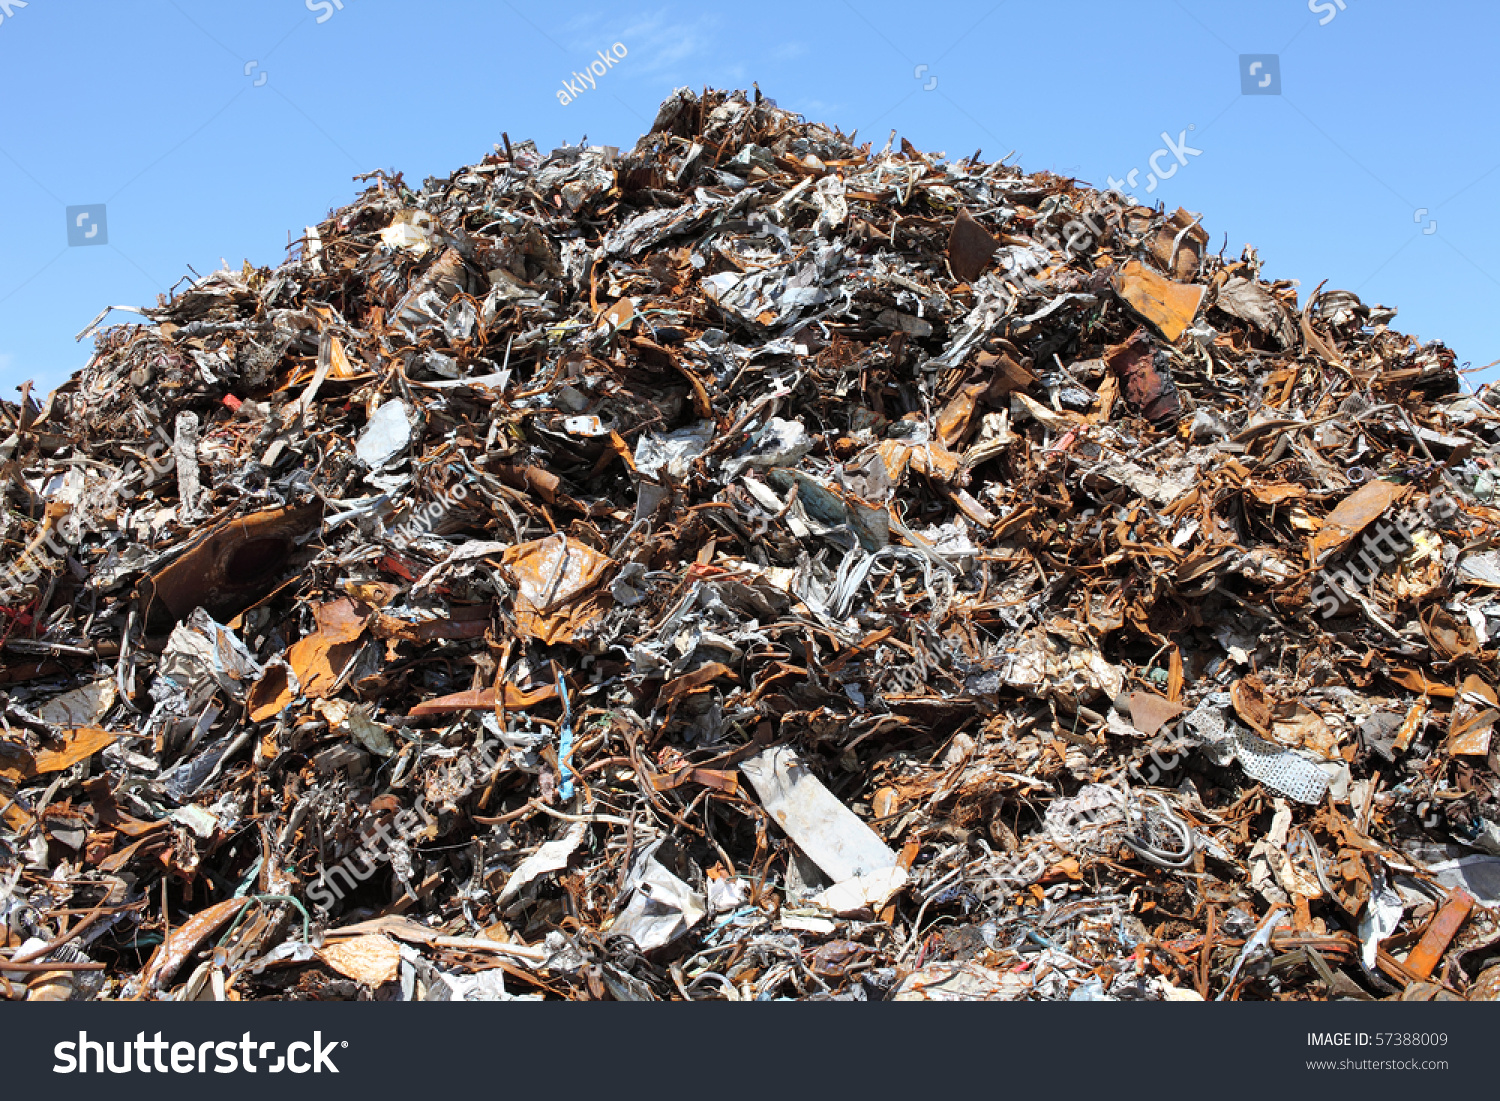 Junk Yard Stock Photo 57388009 - Shutterstock